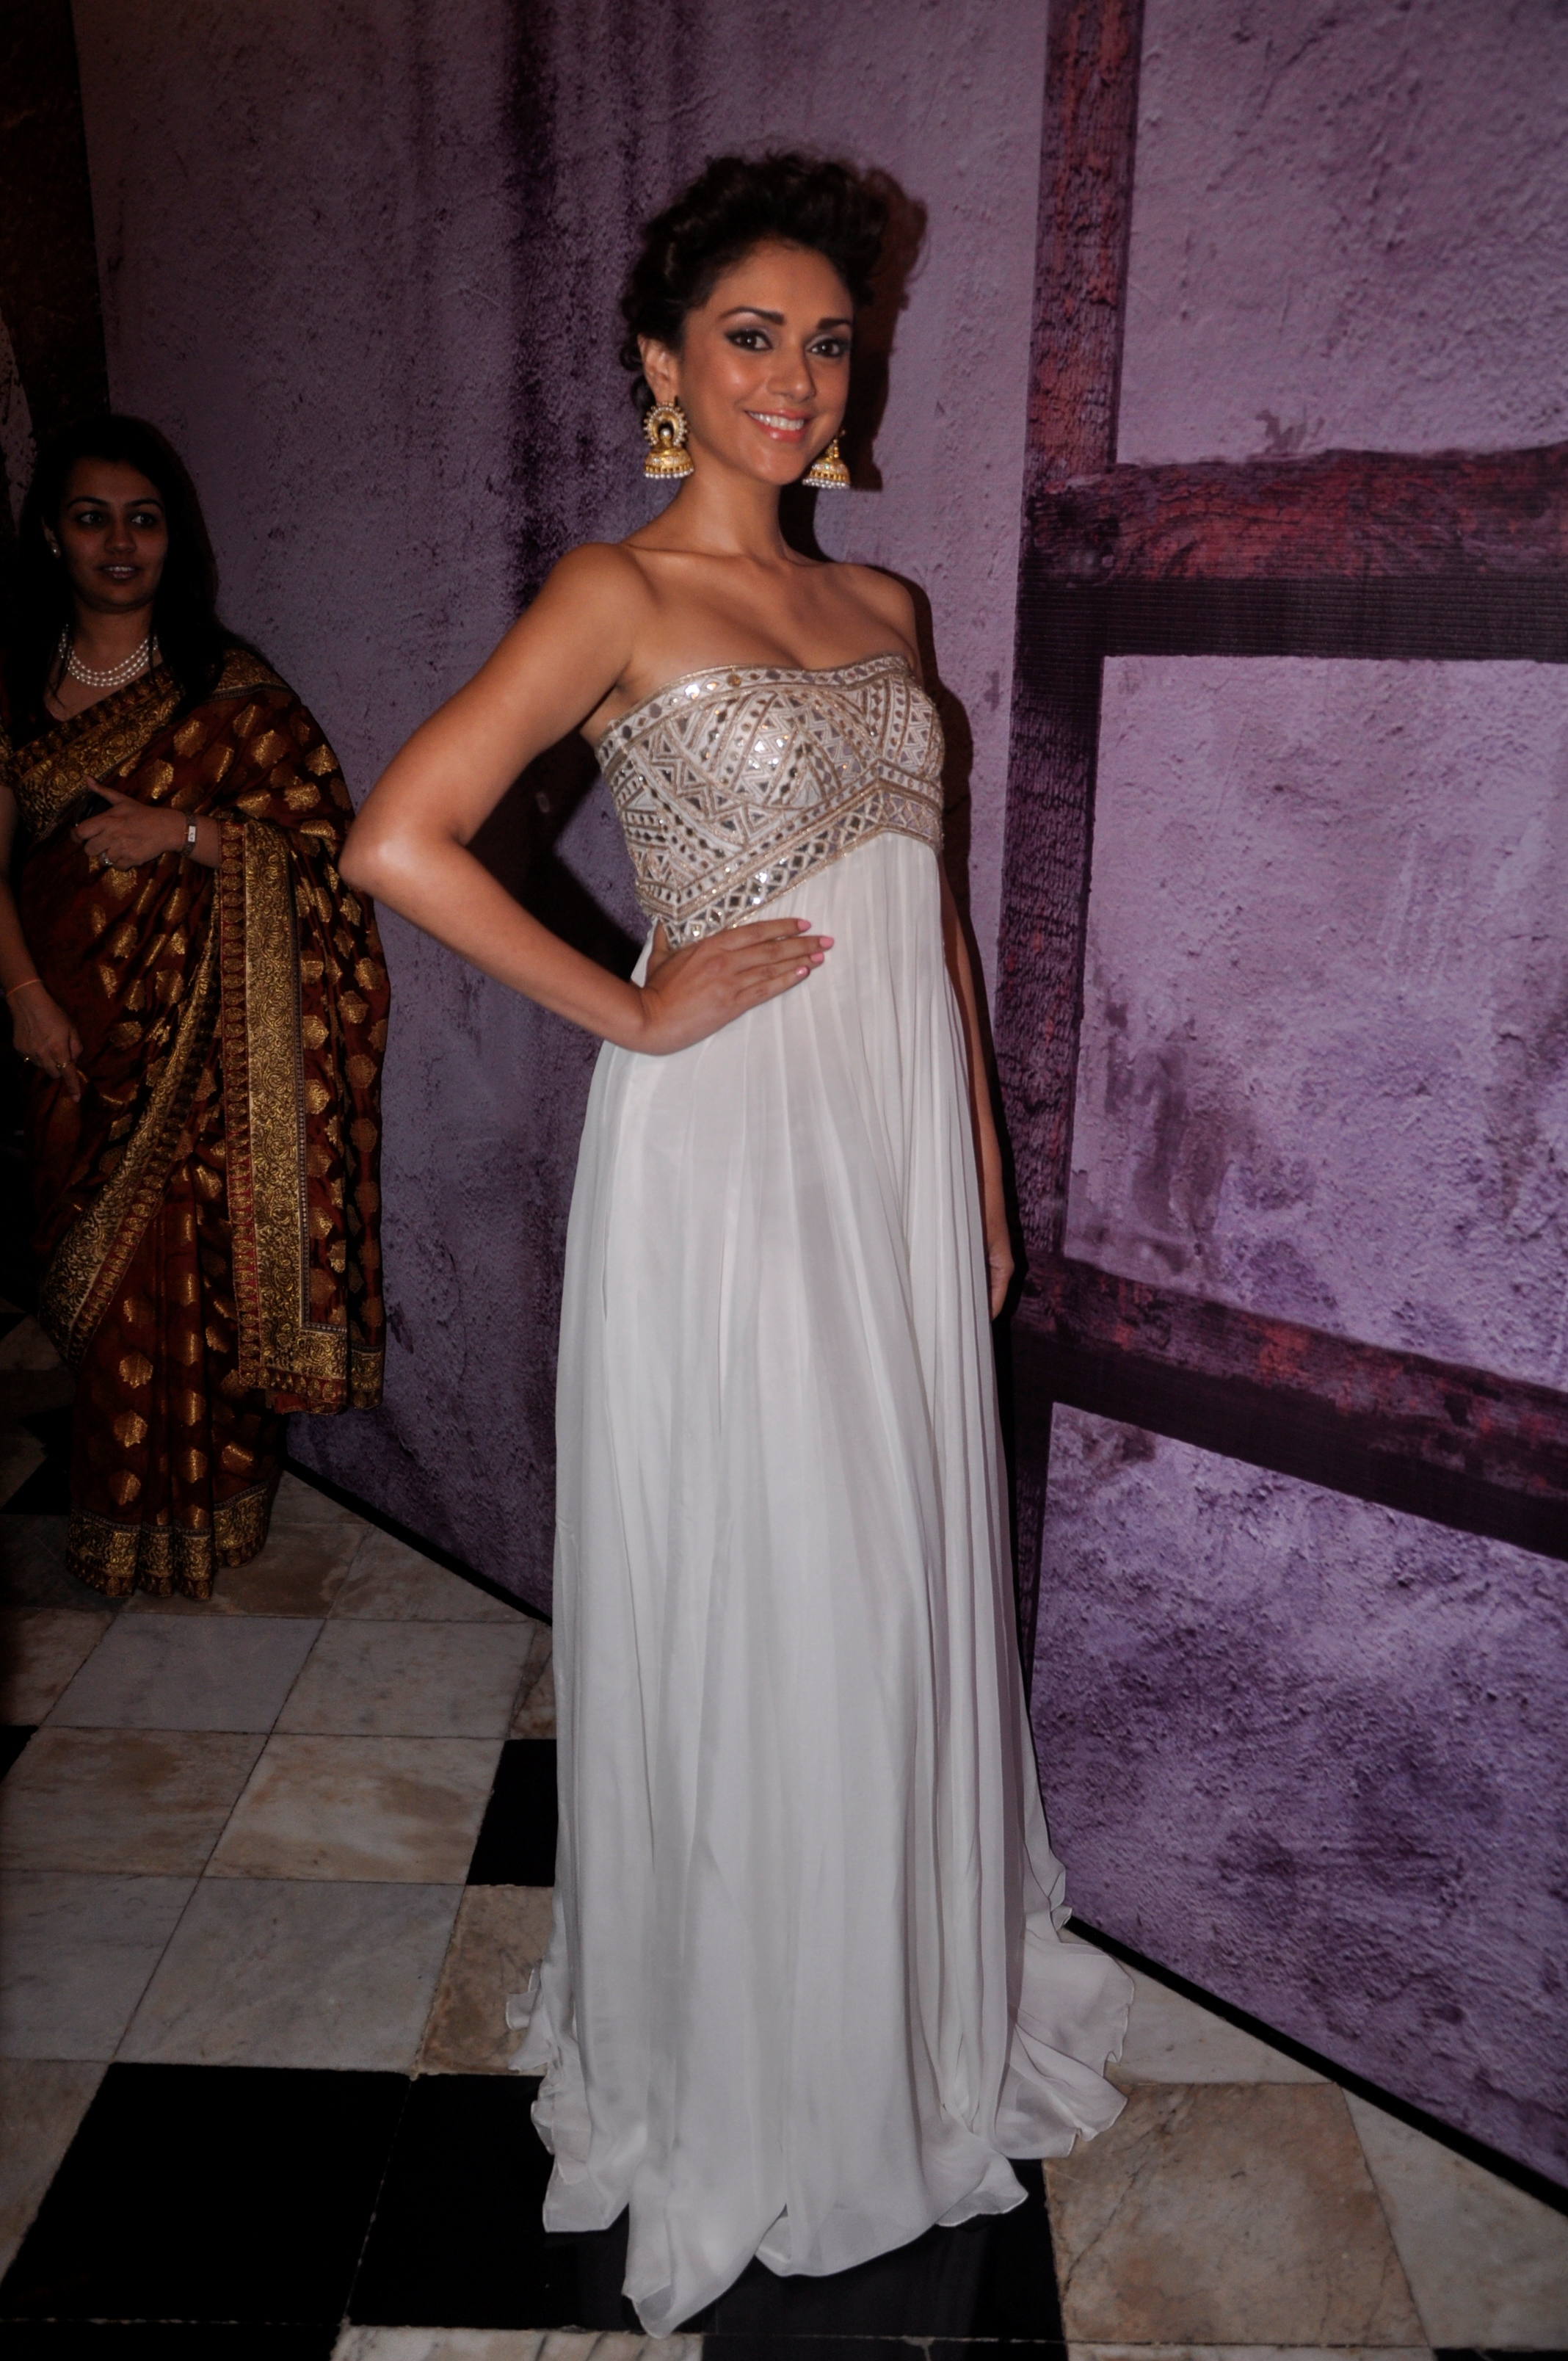 Spotted: Aditi Rao Hydari in Anita Dongre gown and Pinkcity earrings ...